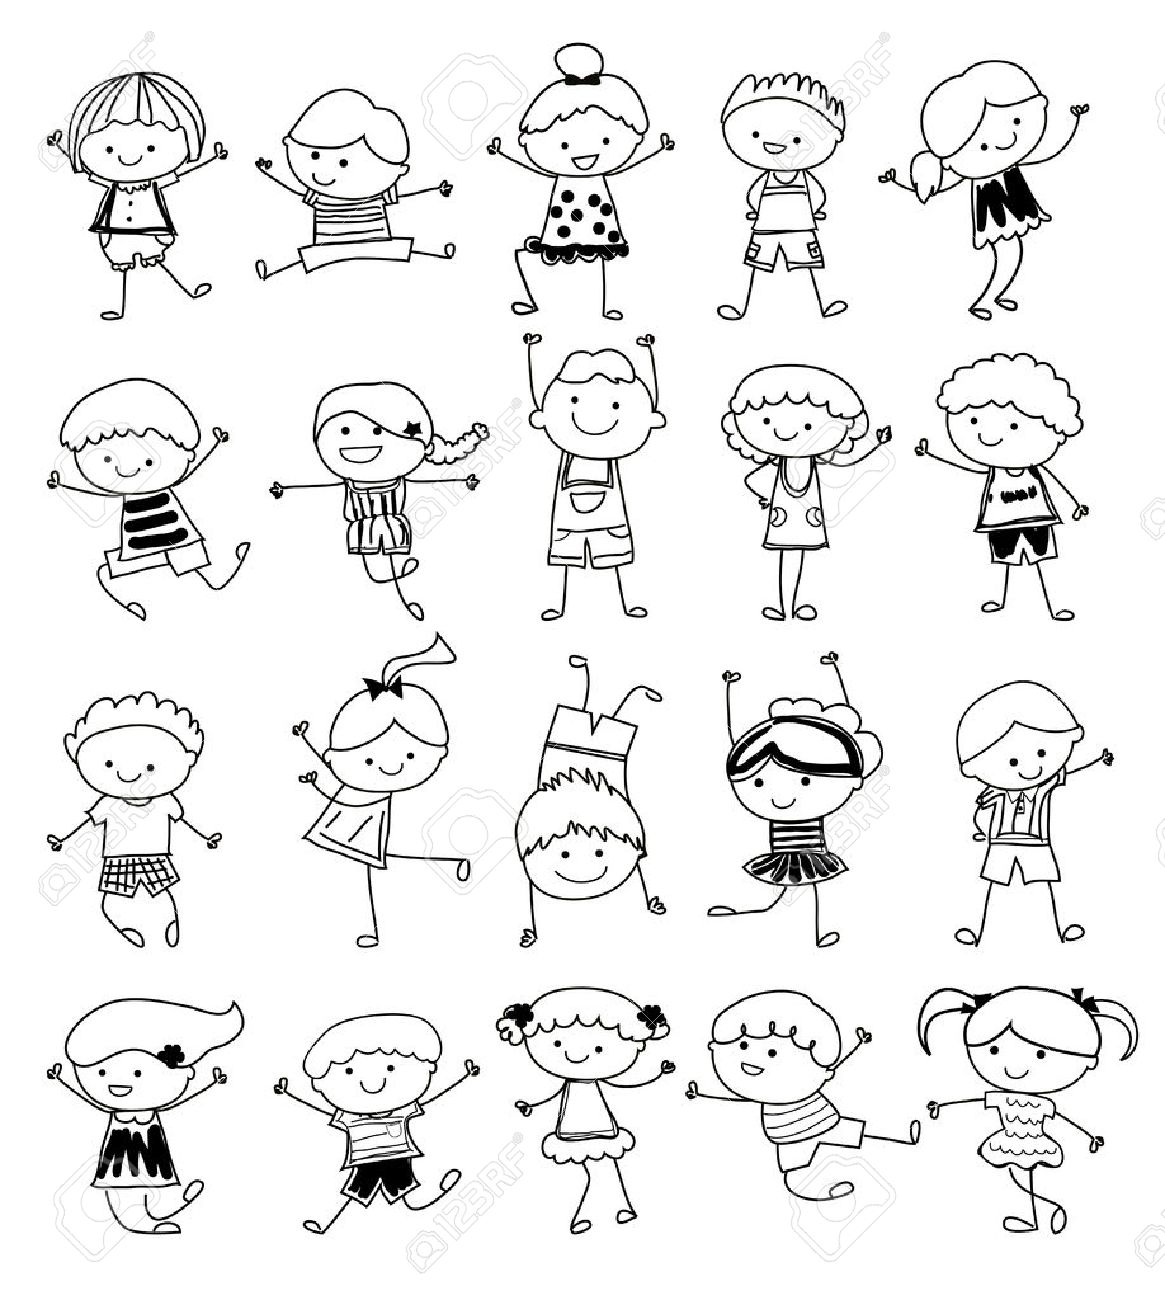 drawing sketch group of kids stock vector 33674250